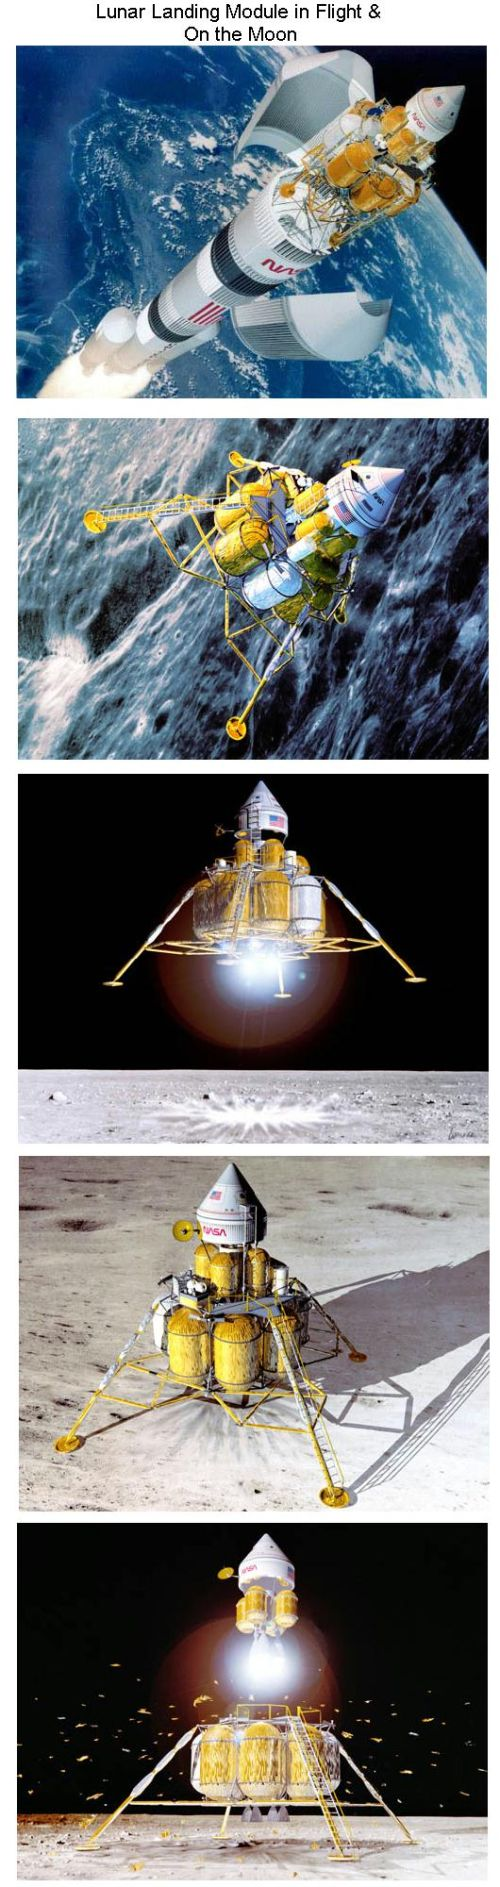 Fig 8 Lunar Lander in Flight & On the Moon